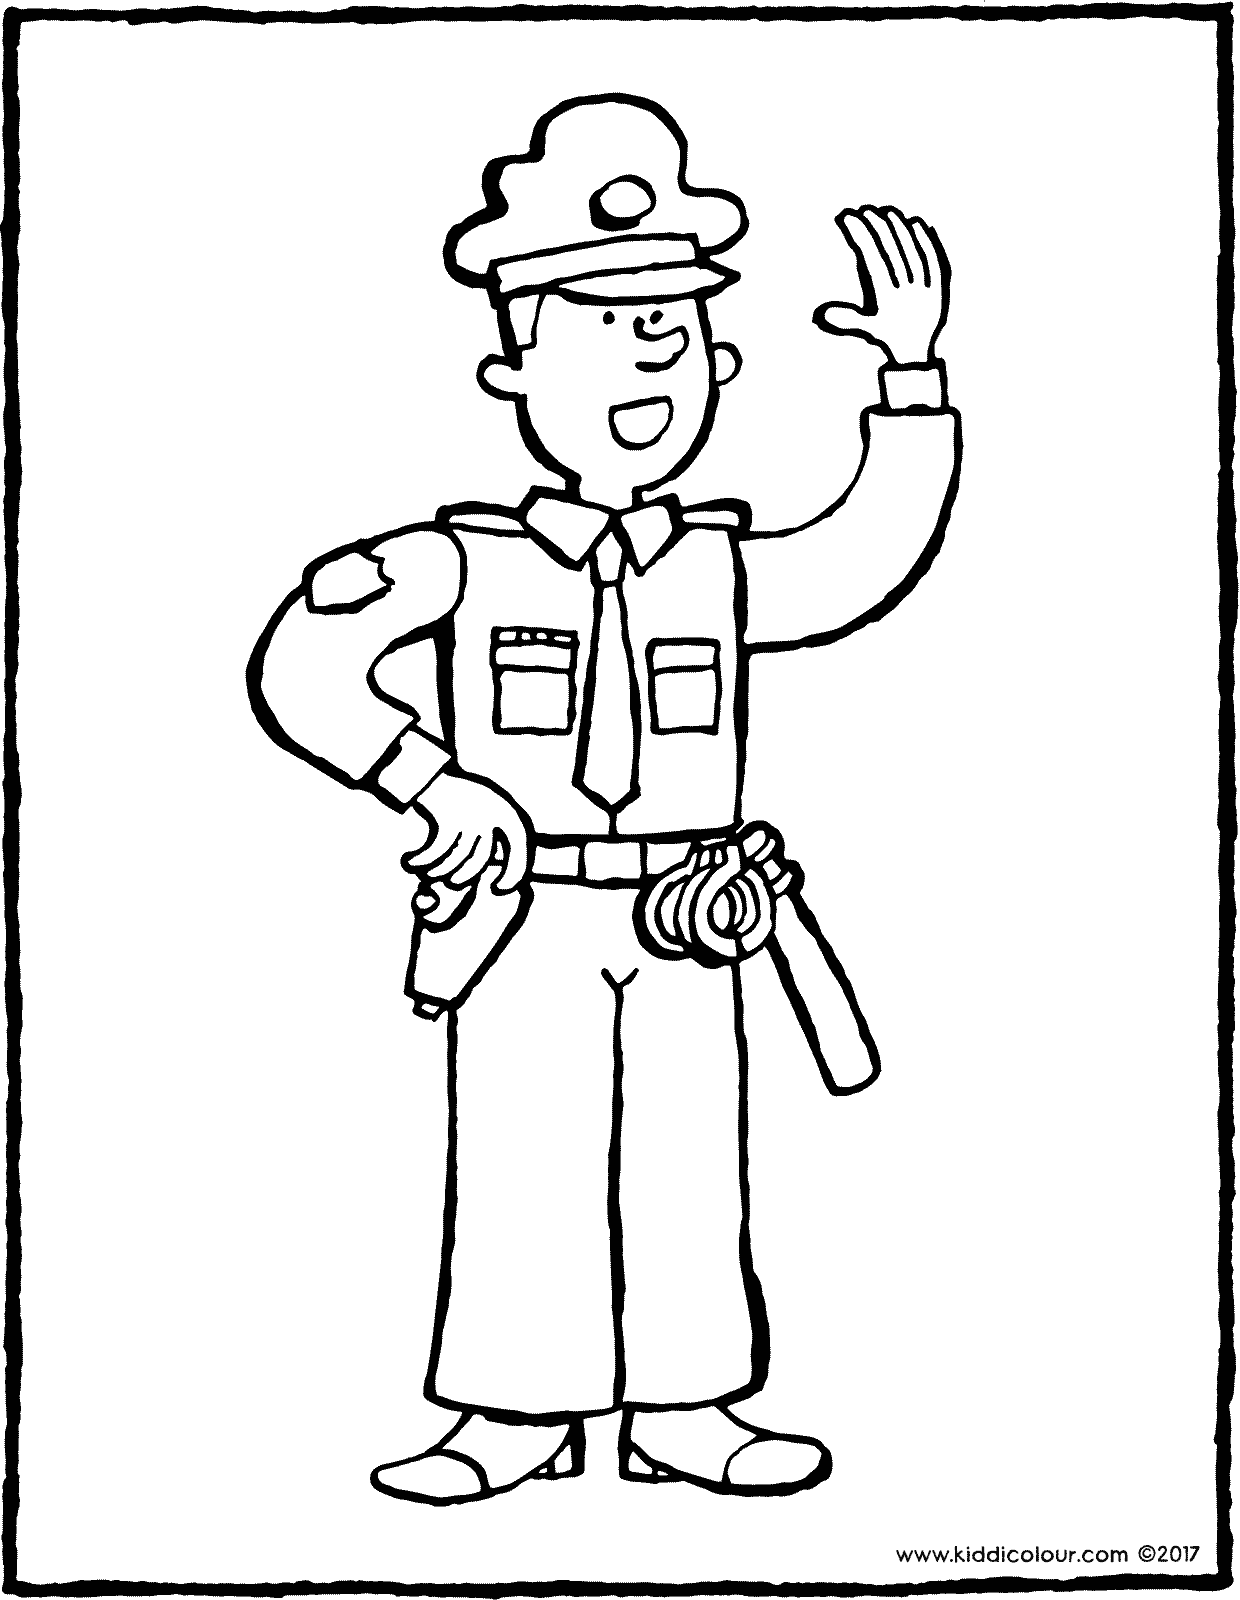 police officer colouring page 01V